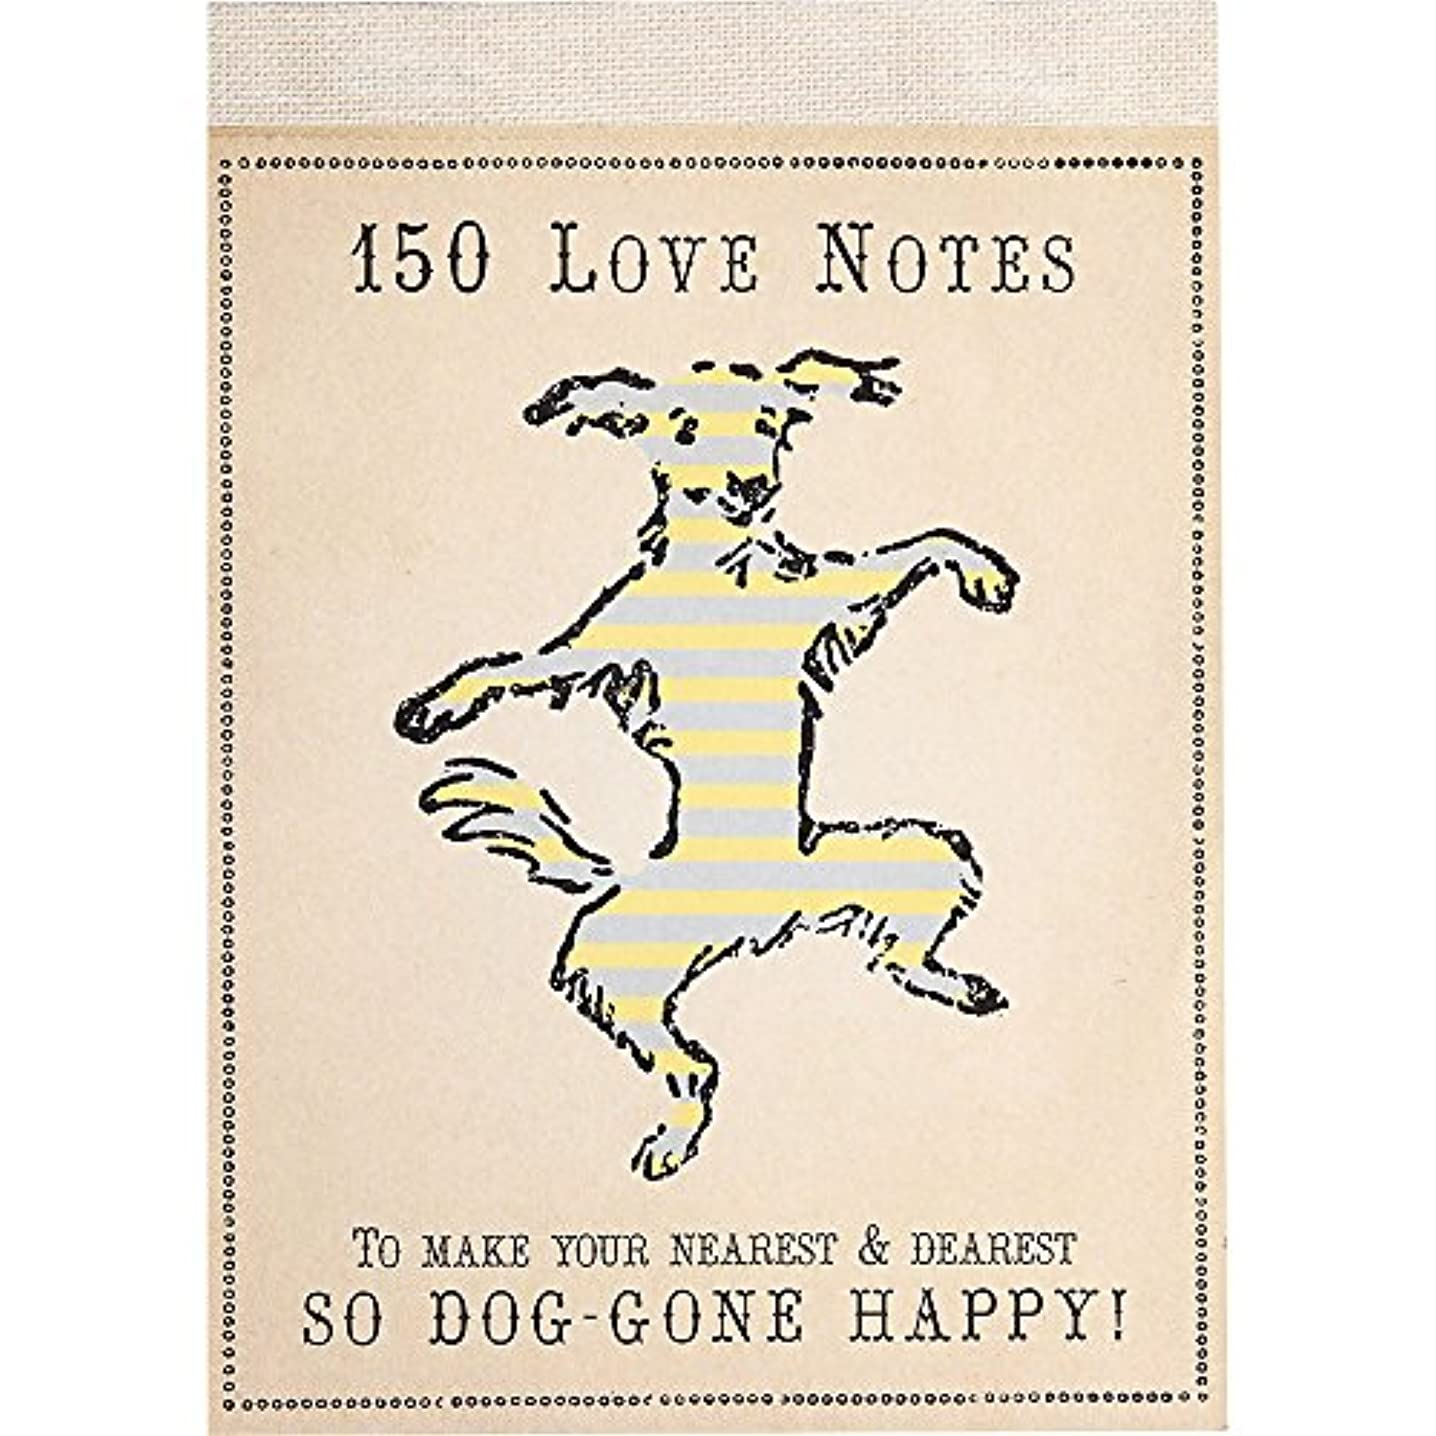 150 Love Notes From Sugarboo Designs